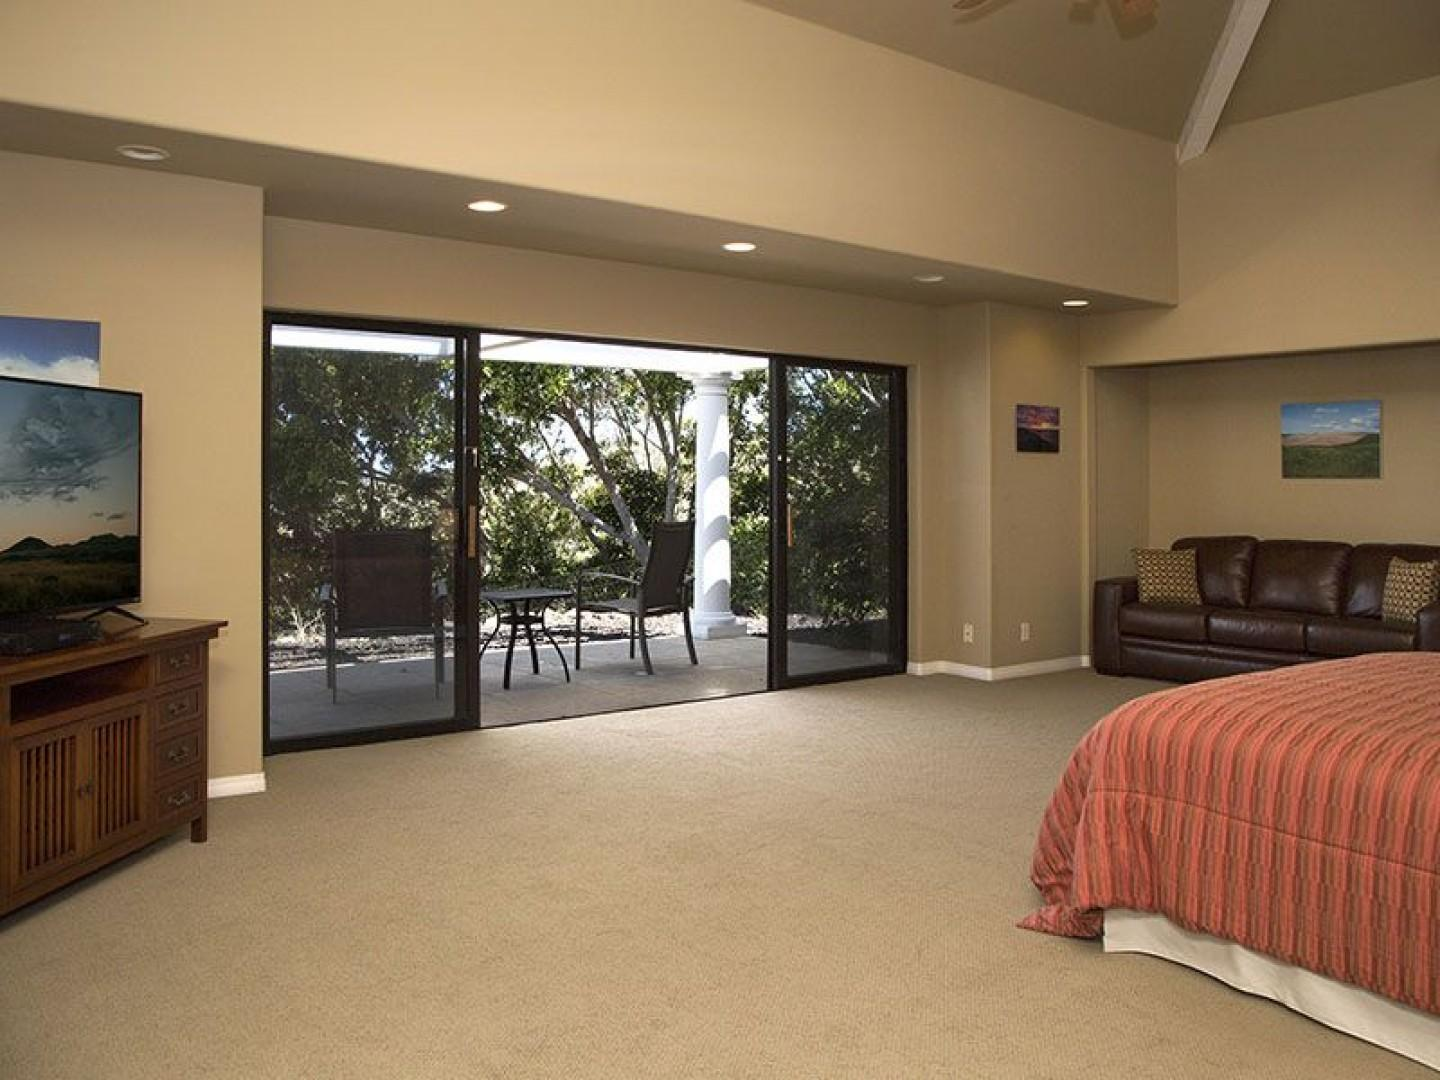 North Master has much privacy and it's own lanai